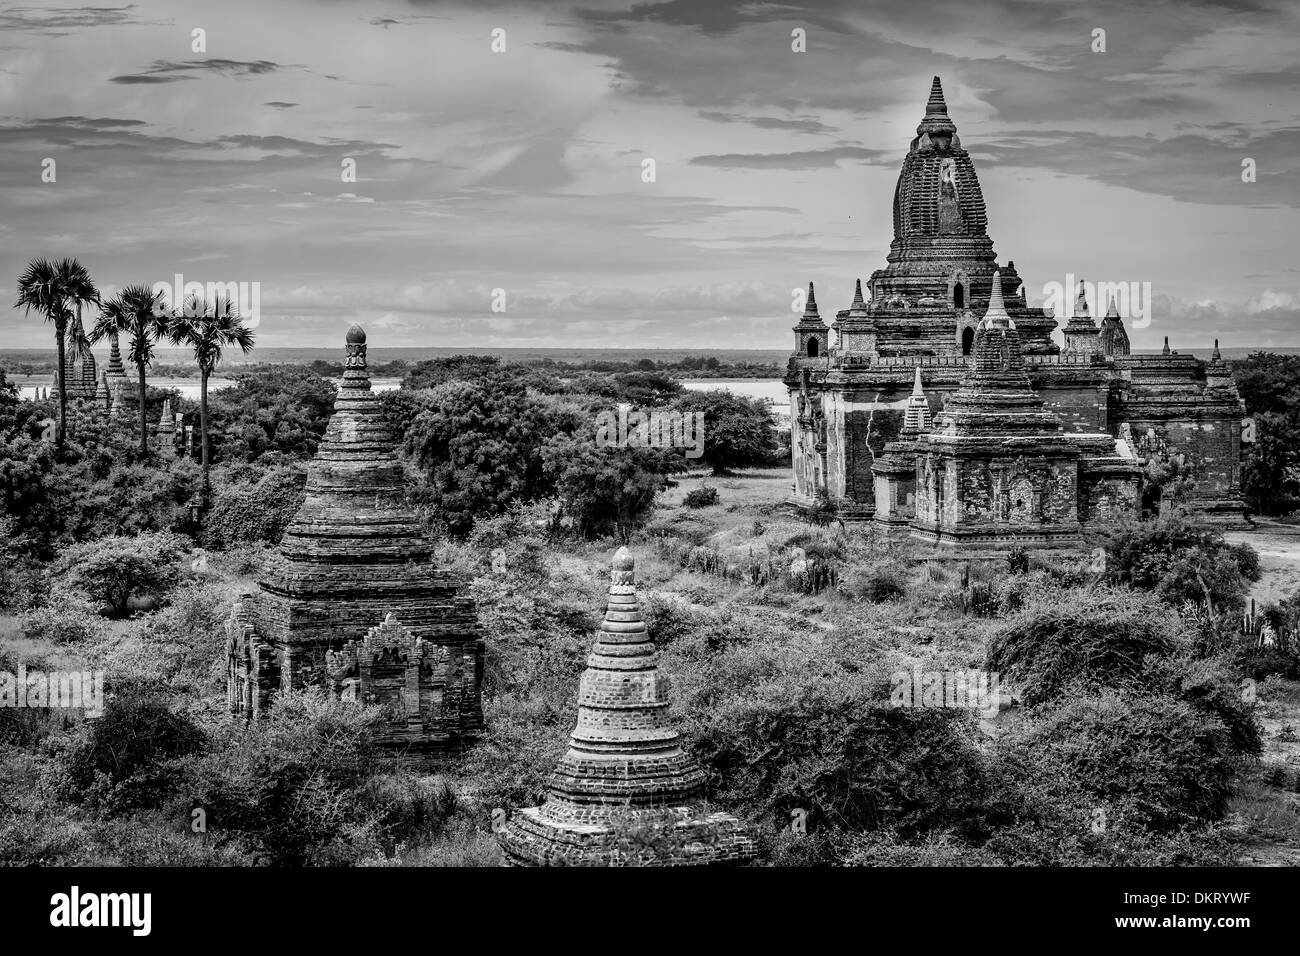 View of Temples, Bagan, Myanmar - Stock Image